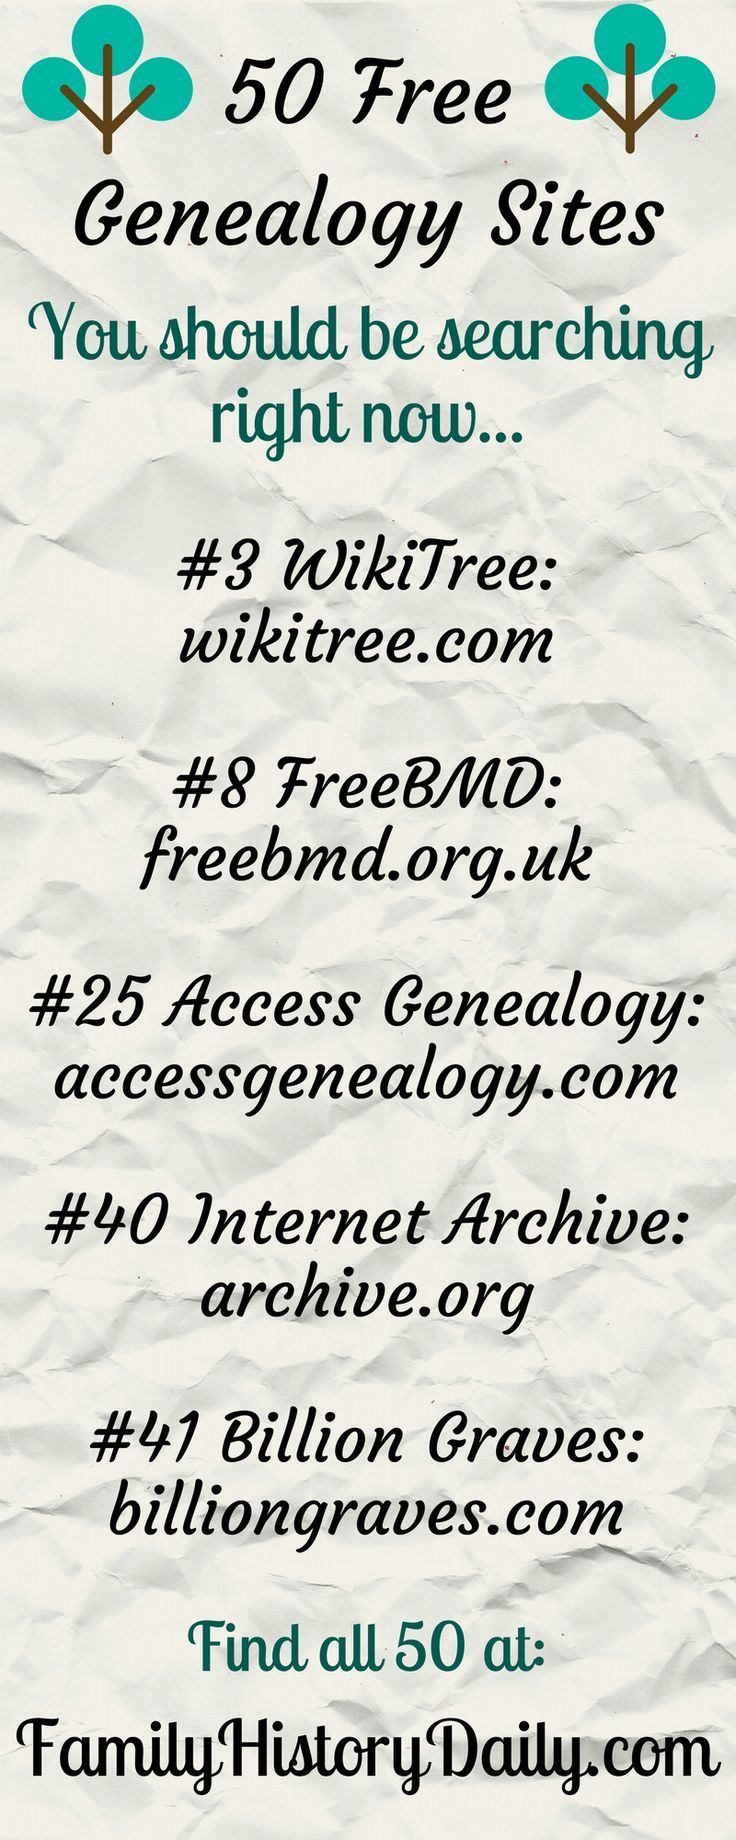 These 50 Free Genealogy Sites Will Take Your Family History Research To The Next Level.